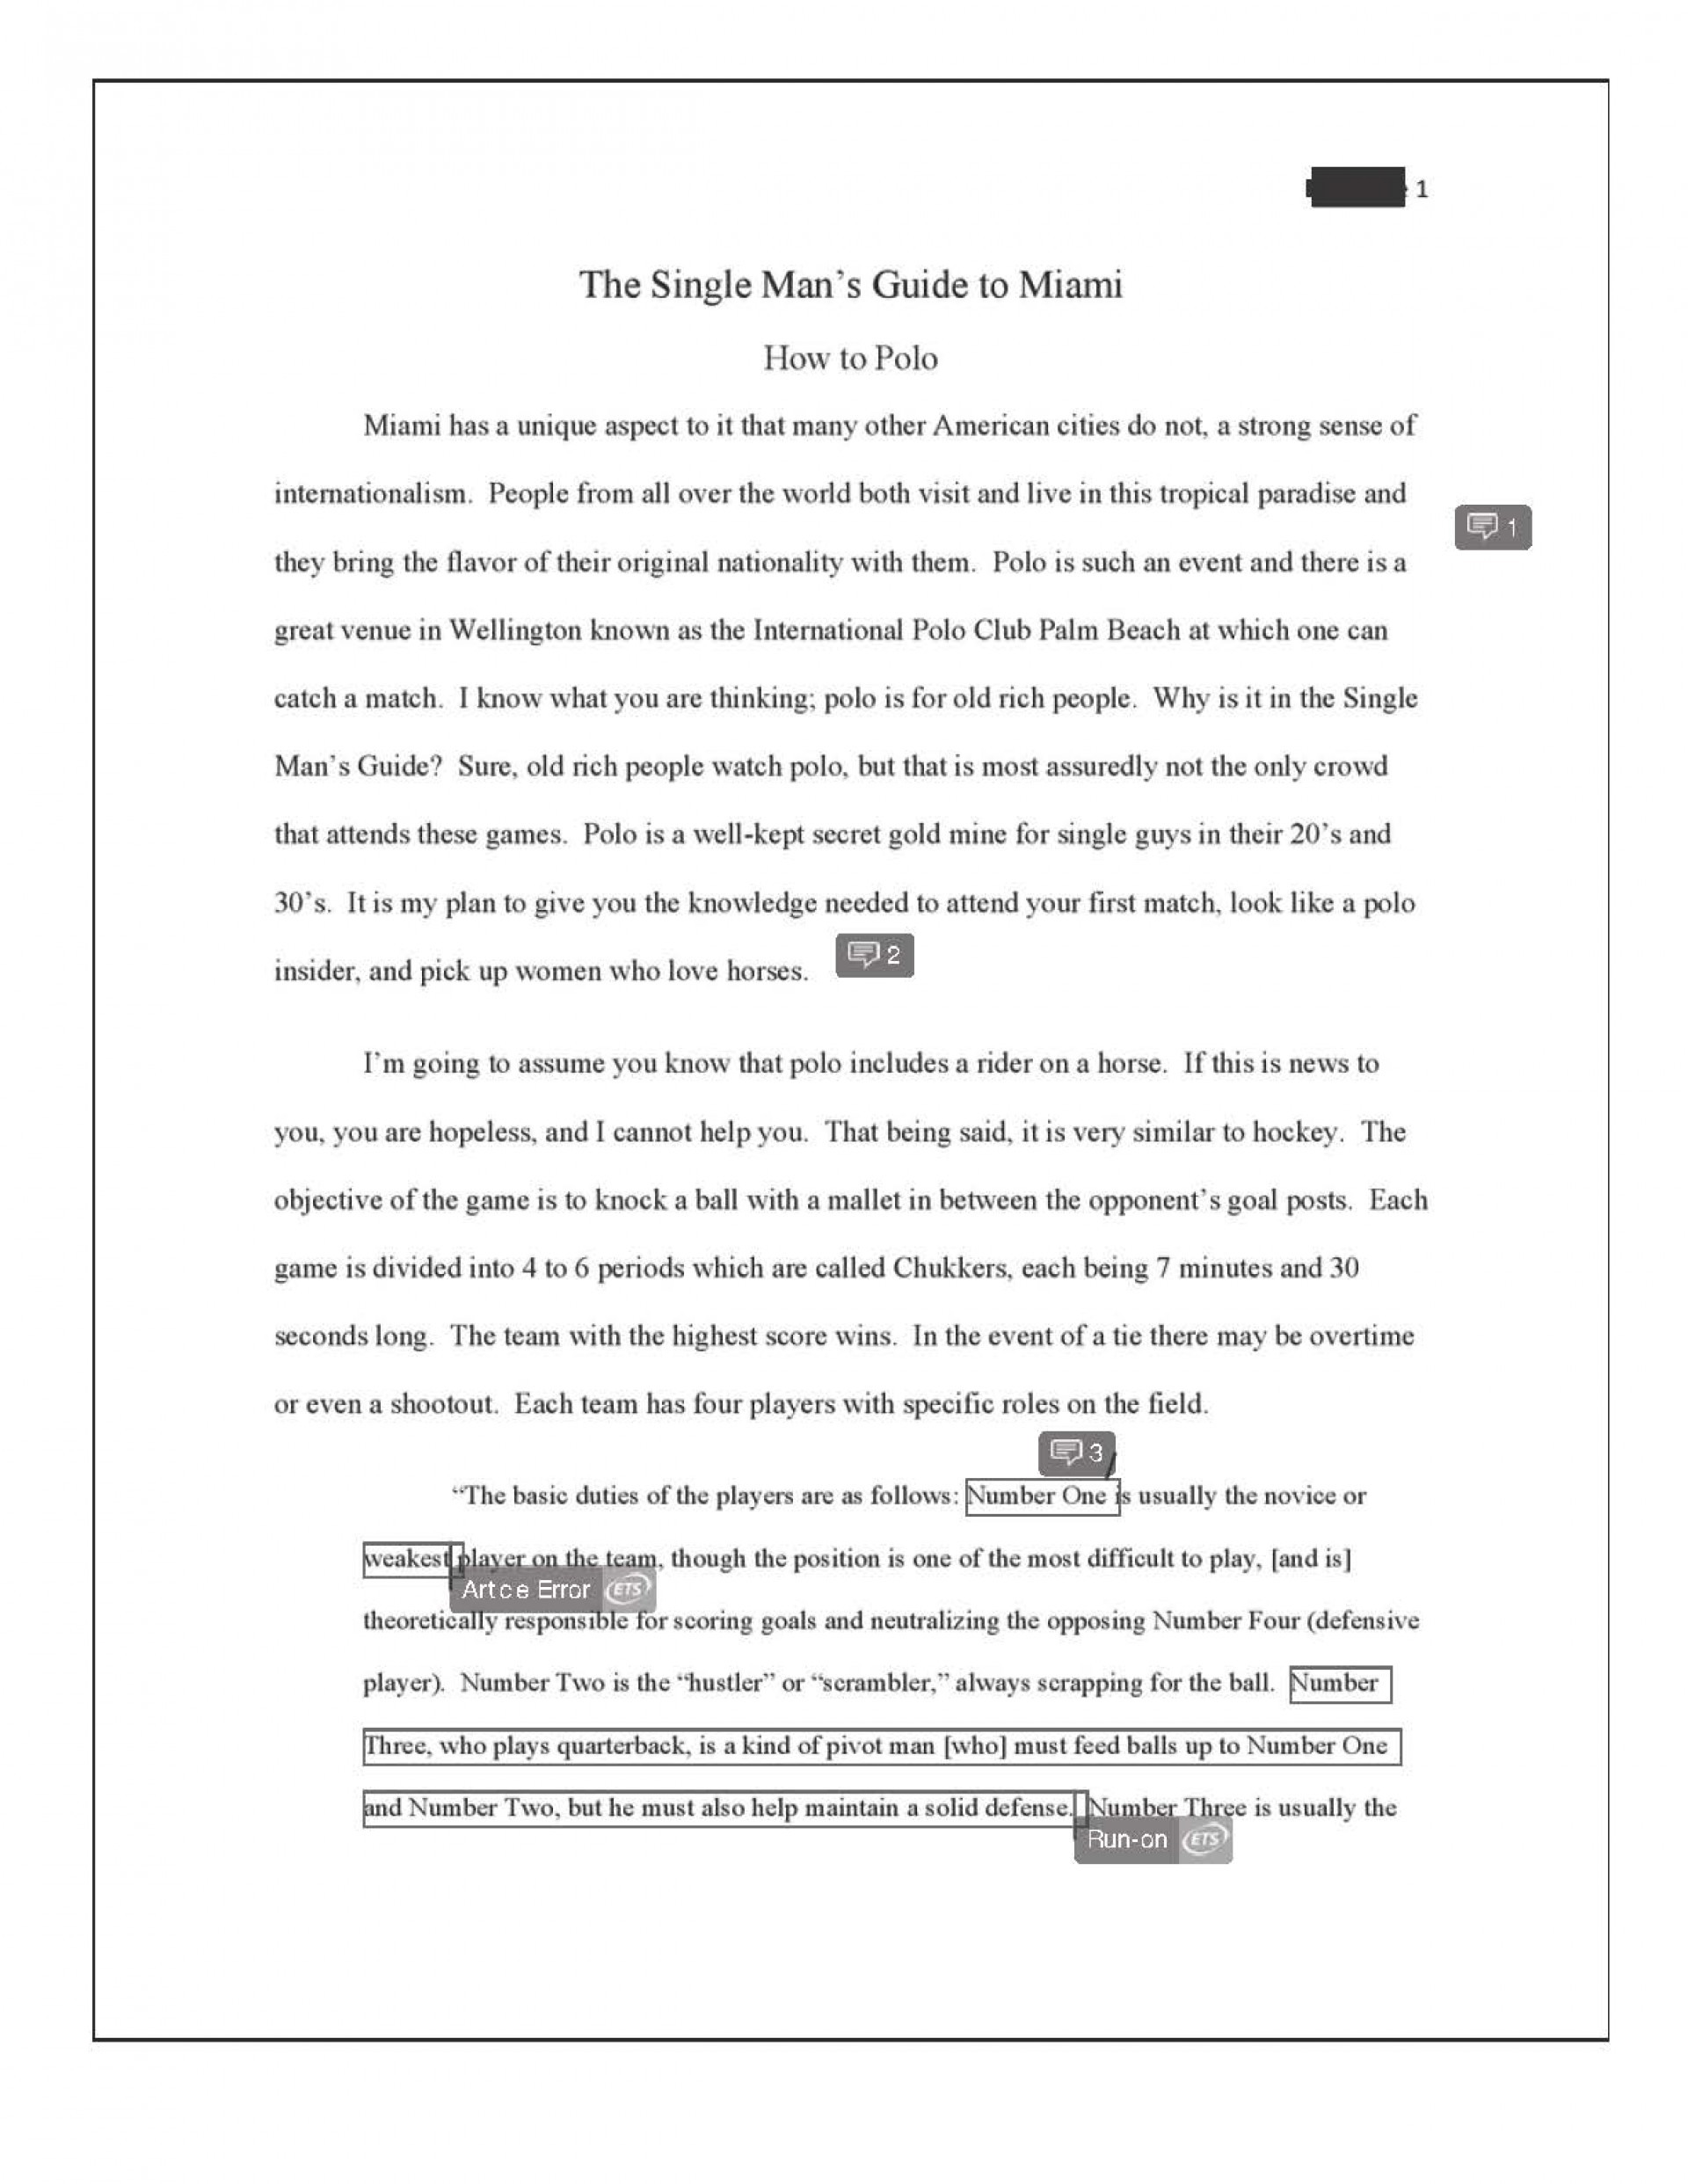 009 Essay Example Informative Format Final How To Polo Redacted Page 2 Unbelievable Pdf Speech Informative/explanatory 1920